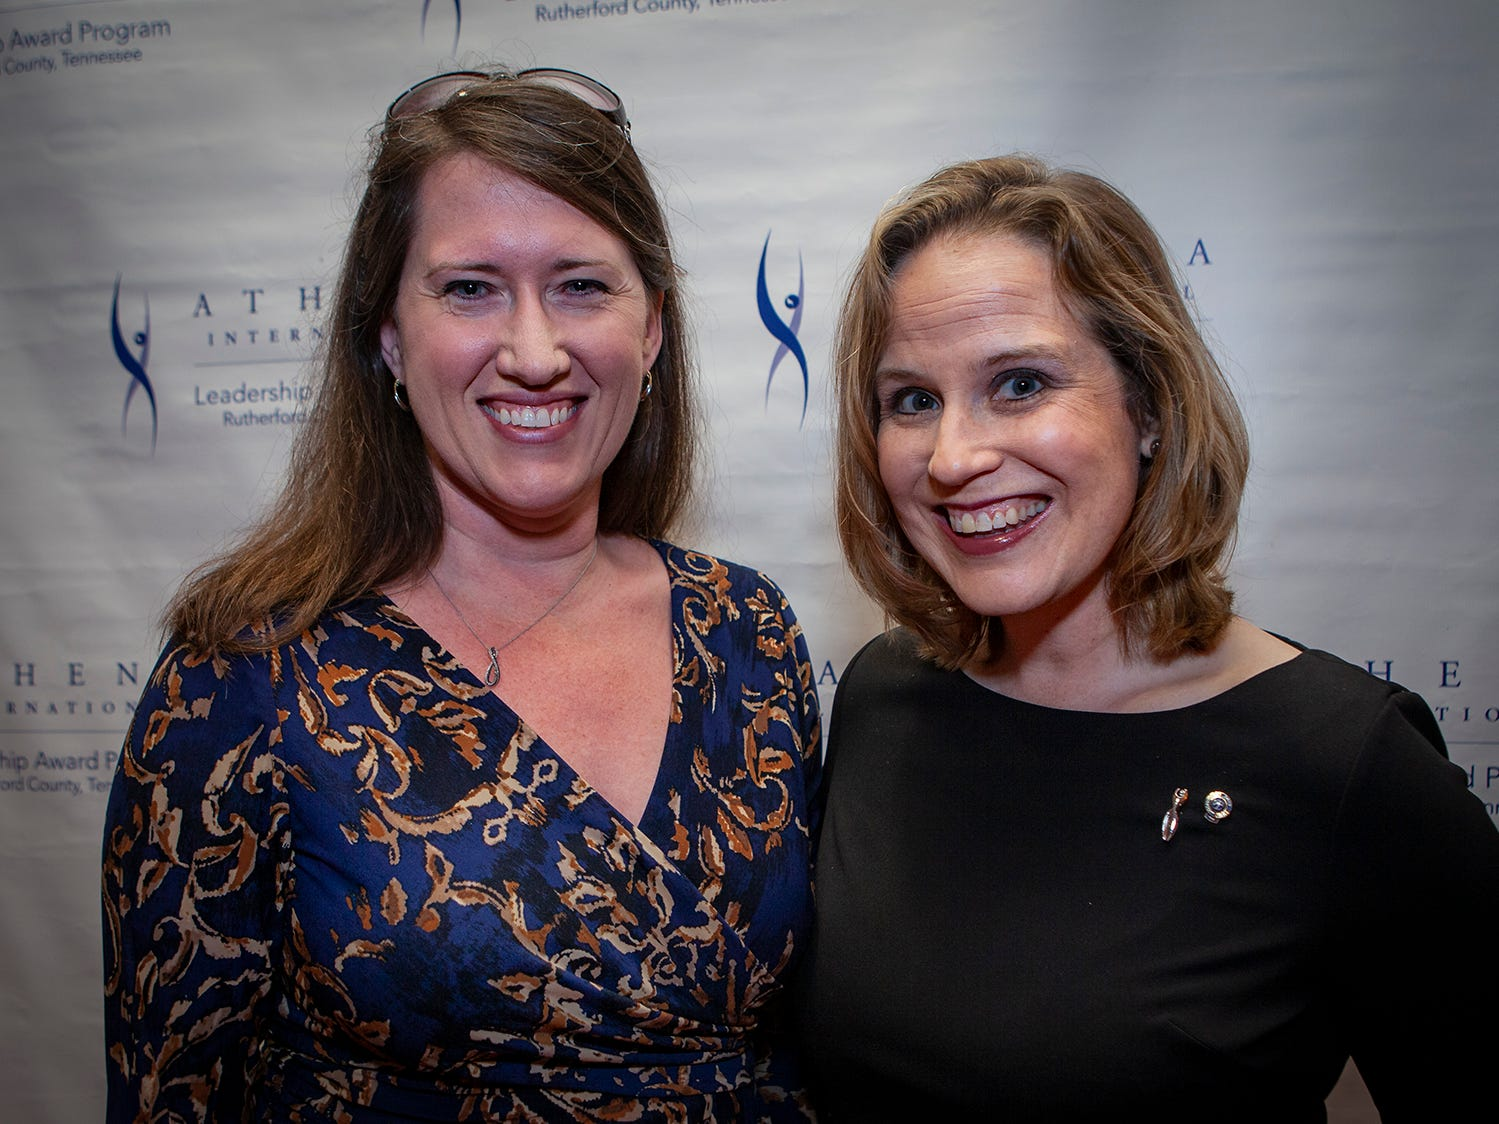 Christy Siegler and Becky Lanham at the annual ATHENA Leadership Awards hosted by Rutherford Cable, Friday, April 12, 2019 at Embassy Suites Murfreesboro.